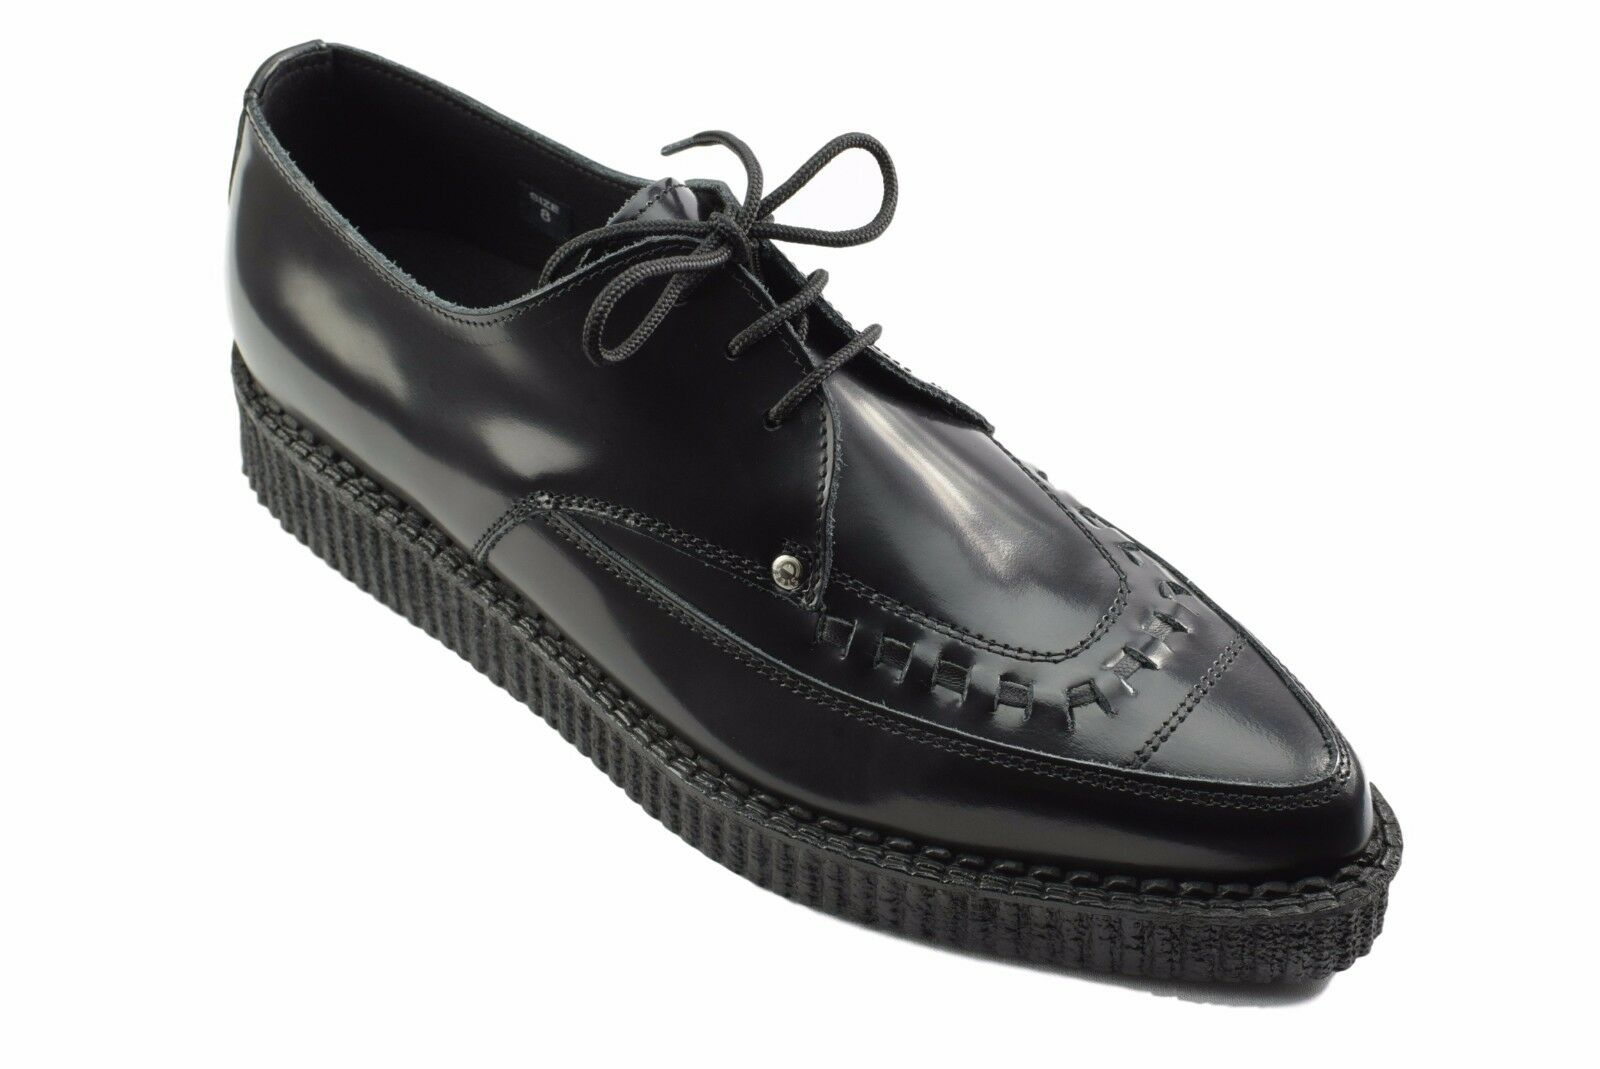 Steel Ground Shoes Black Leather Leather Leather Creepers Lace Up Pointed Sc201Z178 c4ed2e